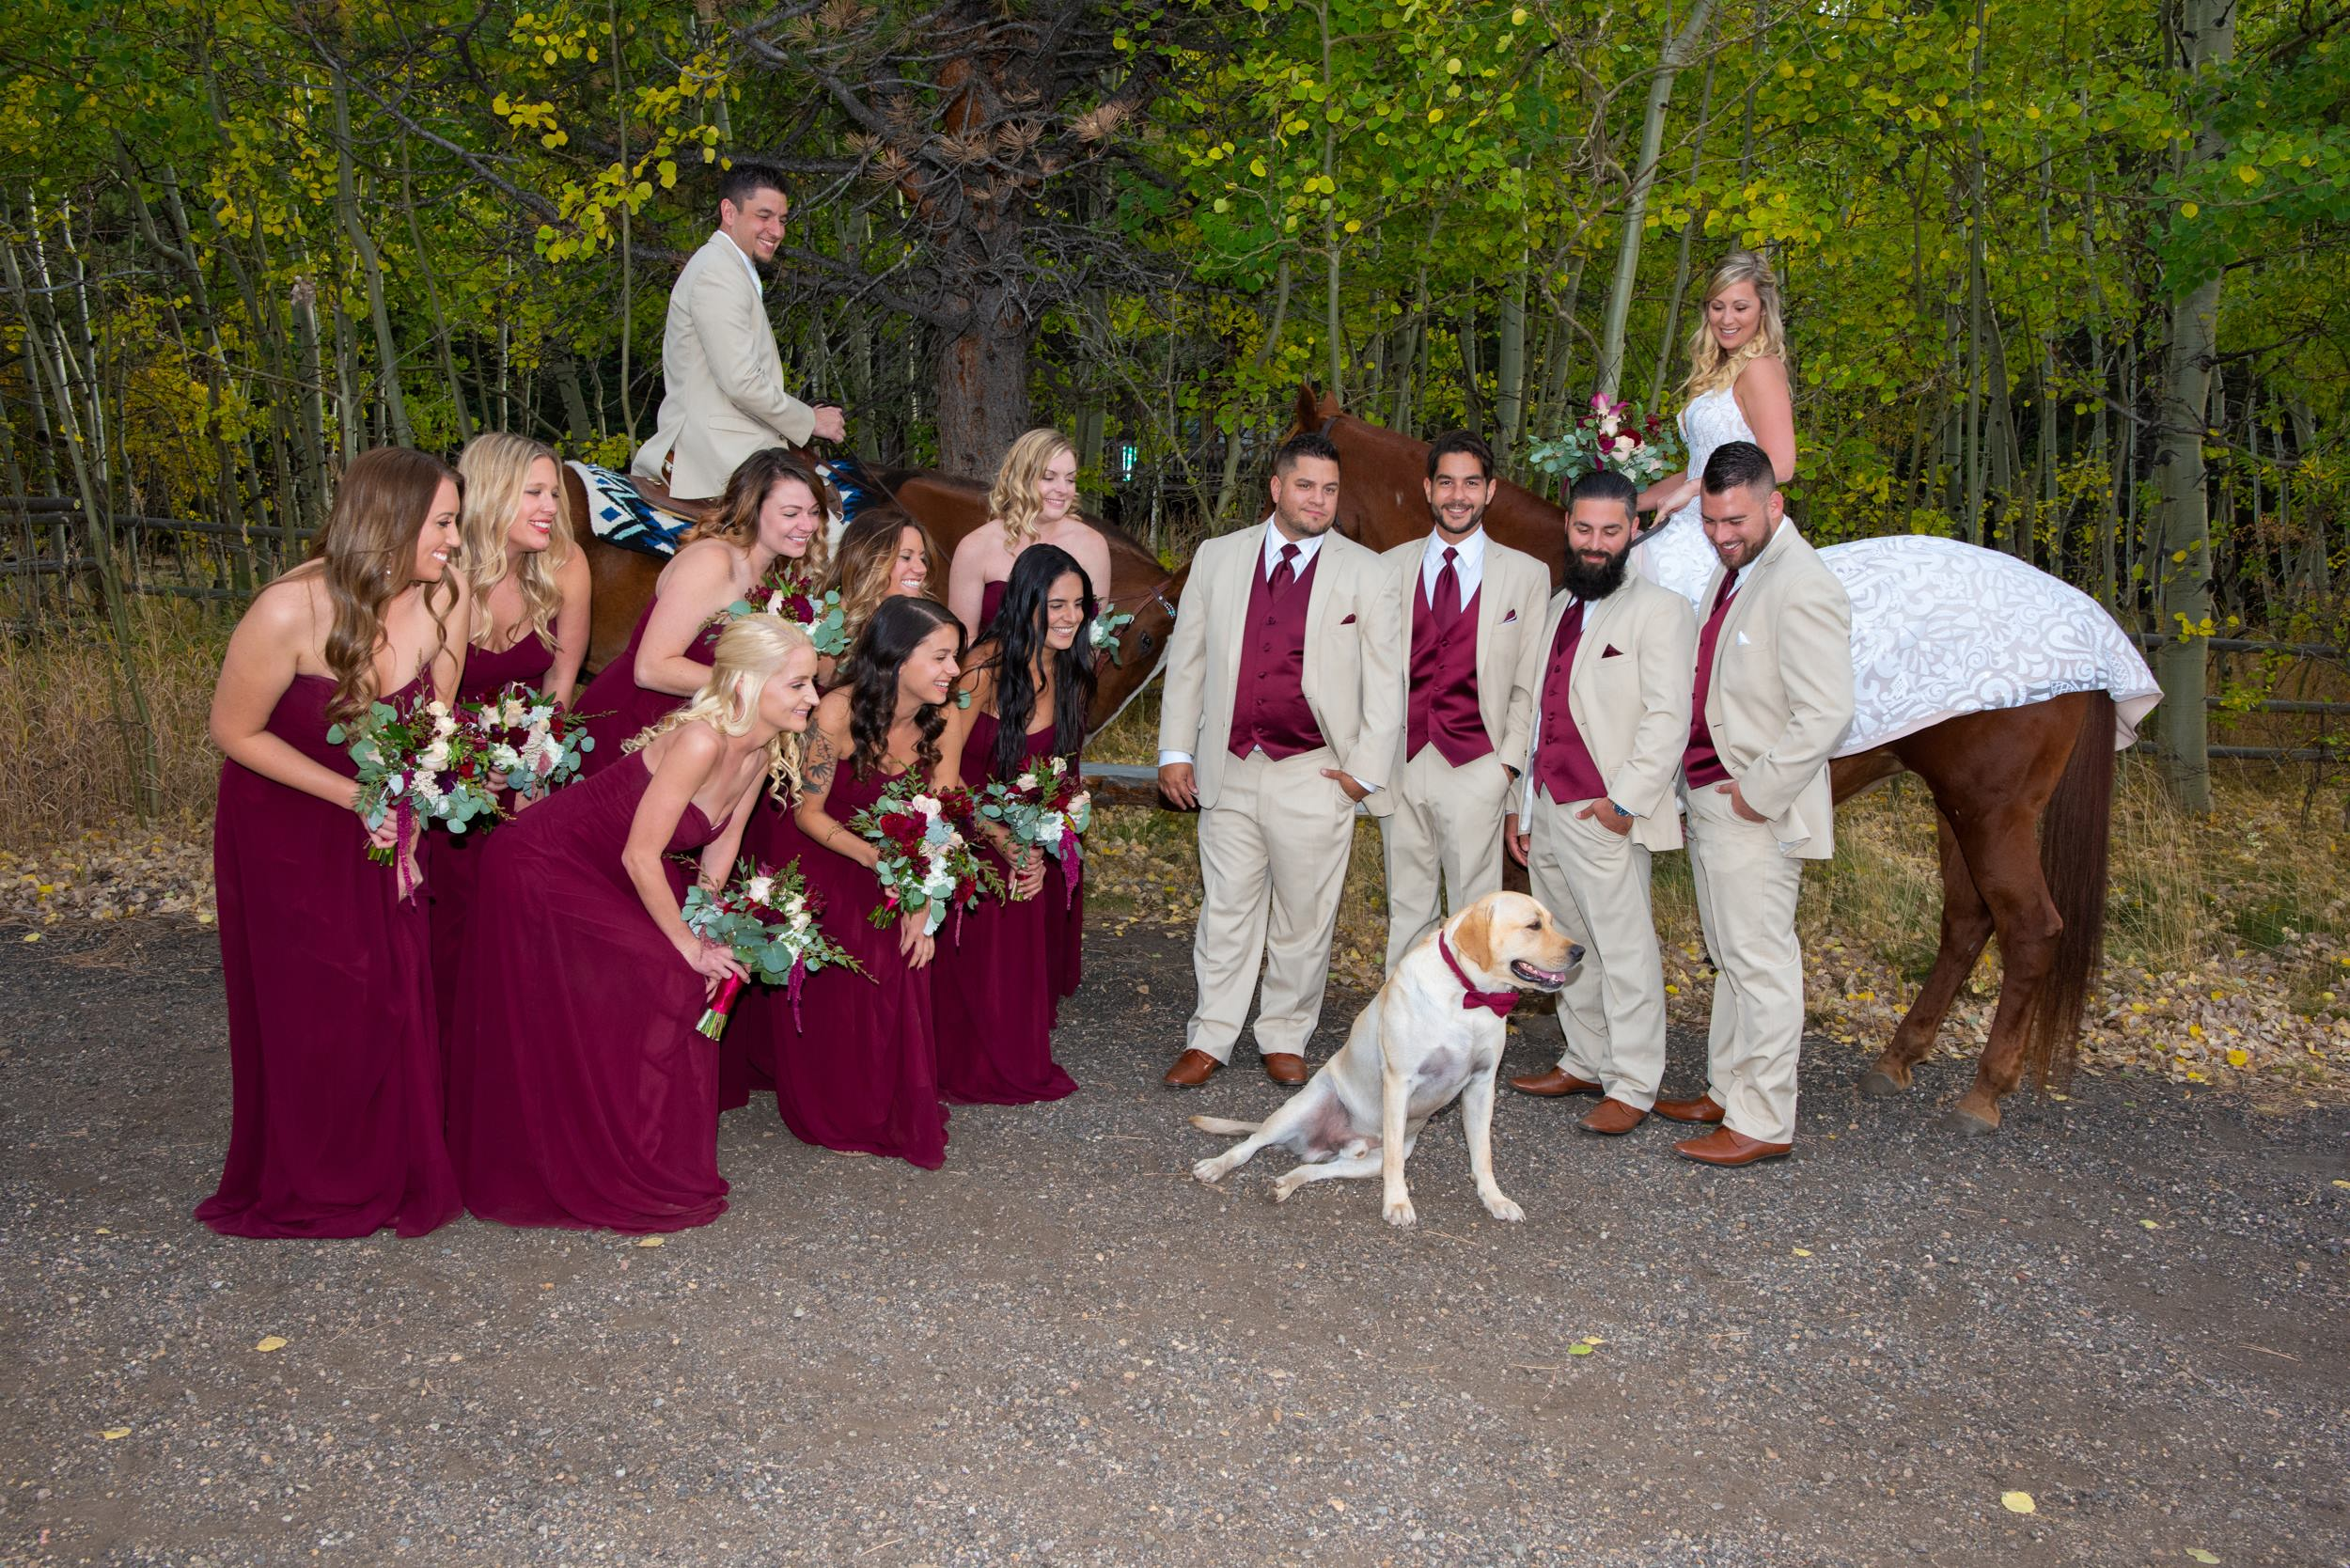 Wedding Party-36.JPG